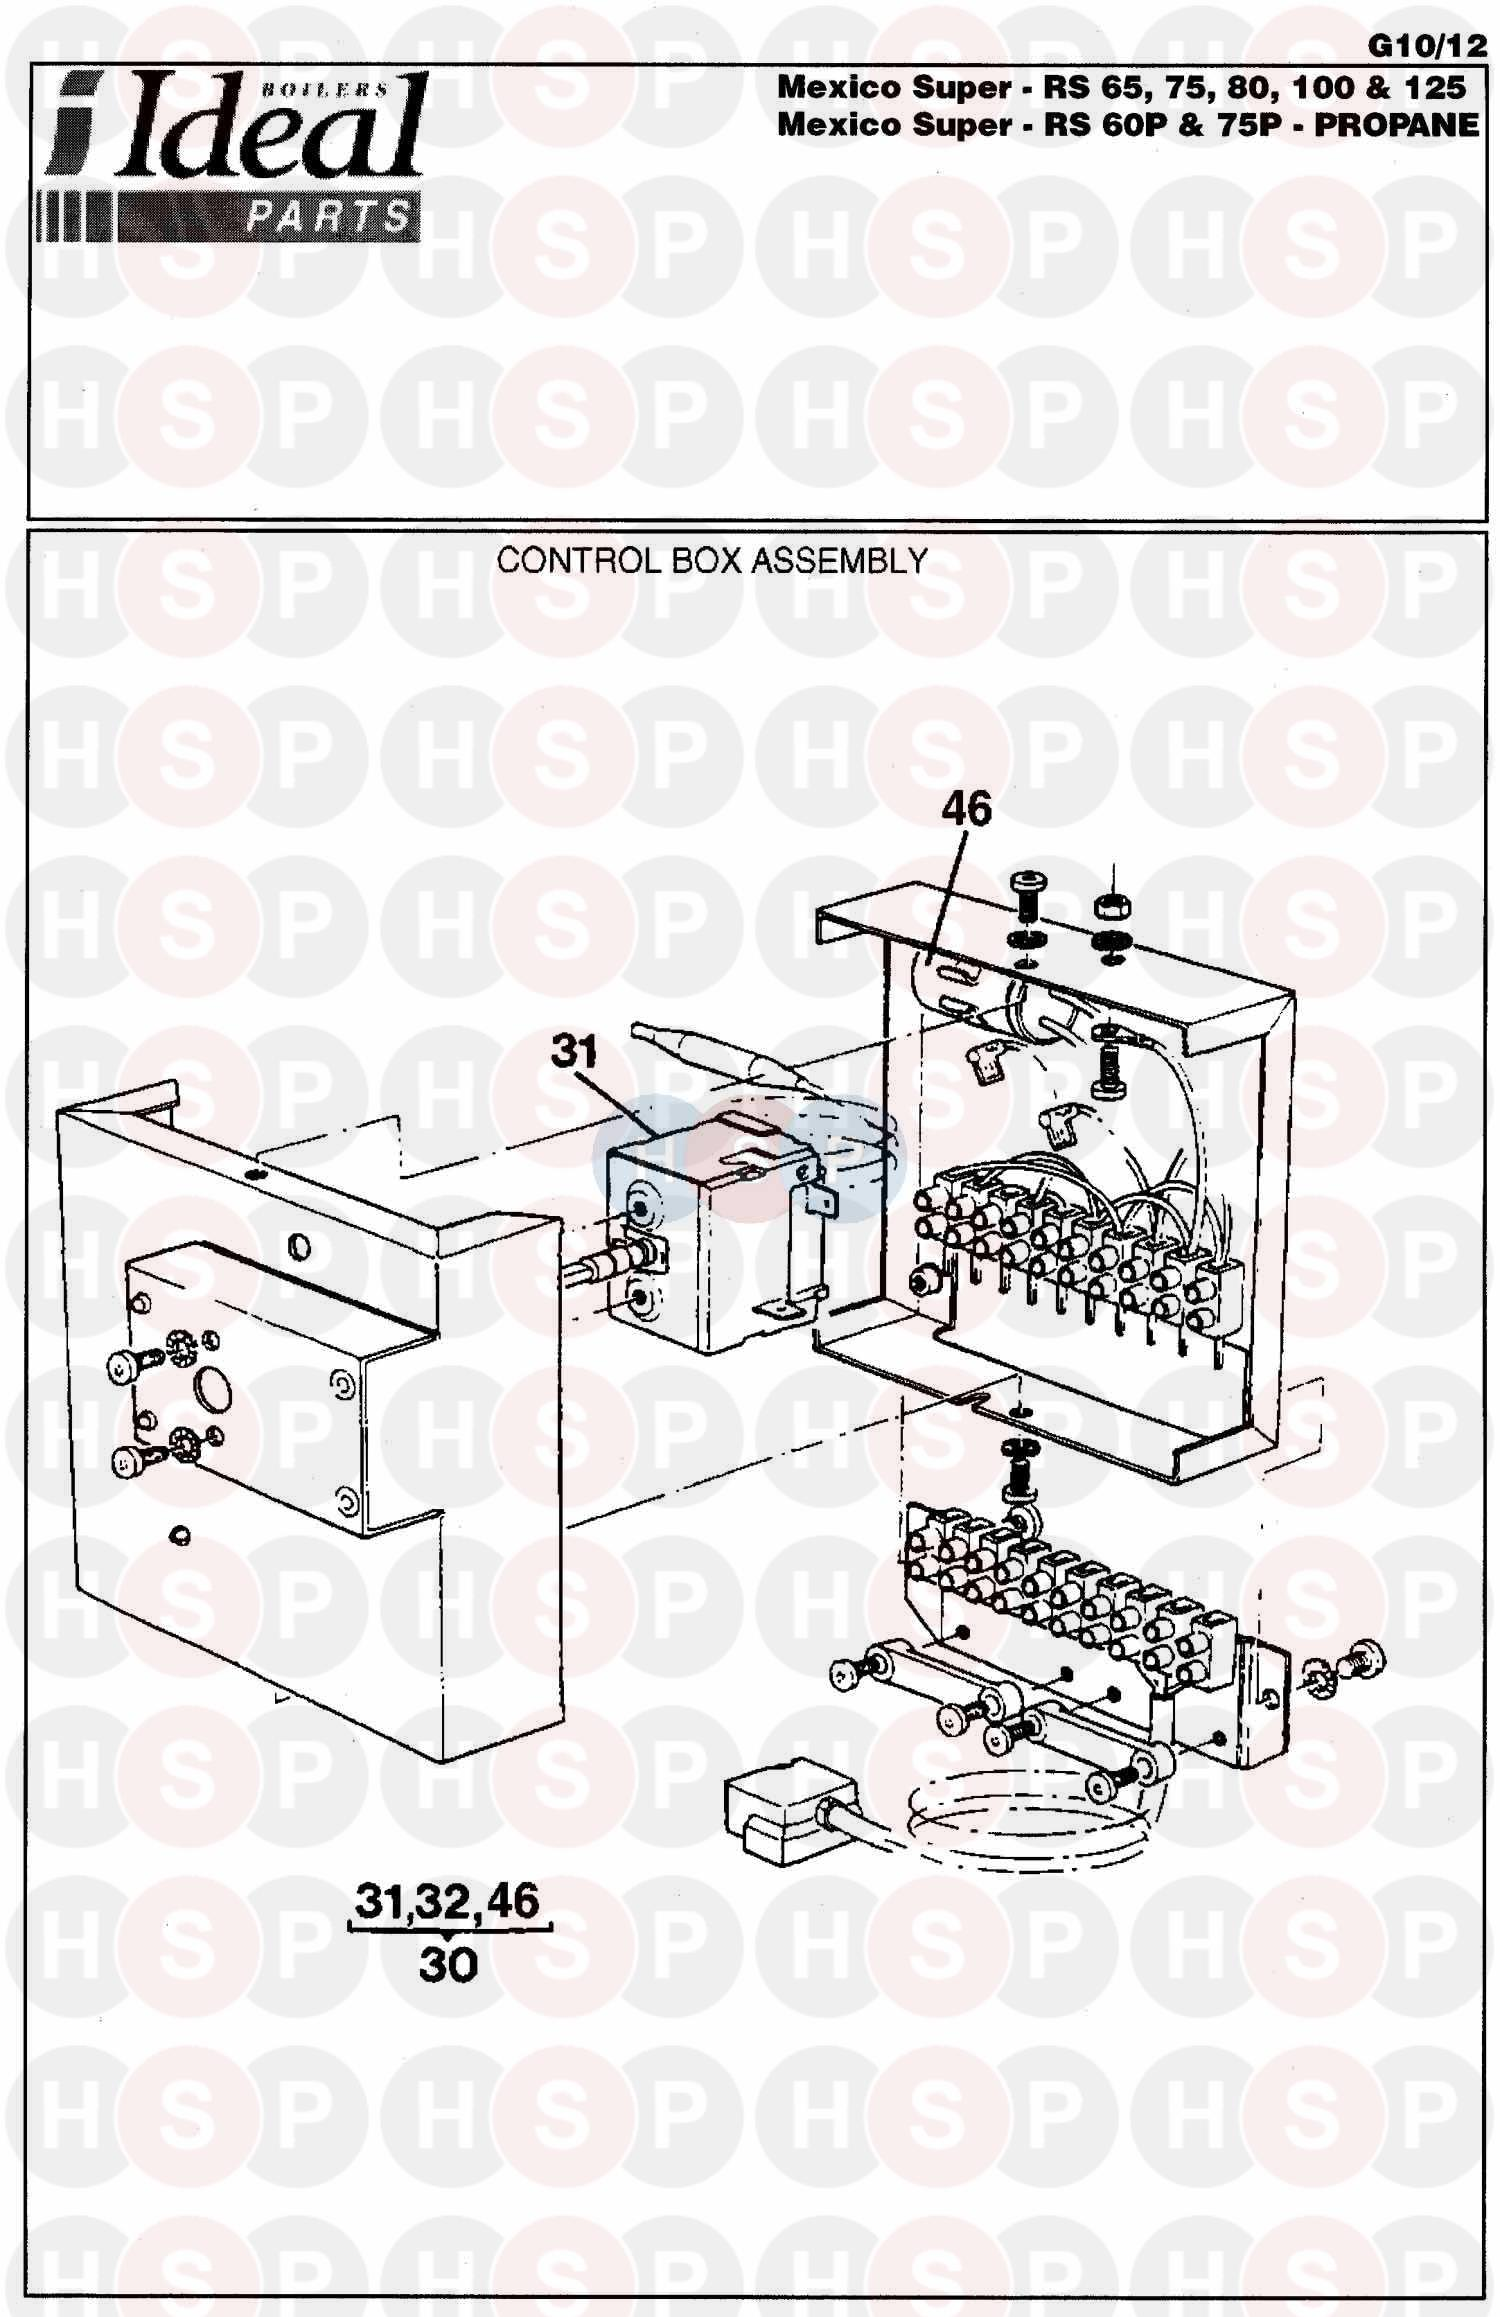 Ideal MEXICO SUPER RS 100 (Control Box Ass) Diagram